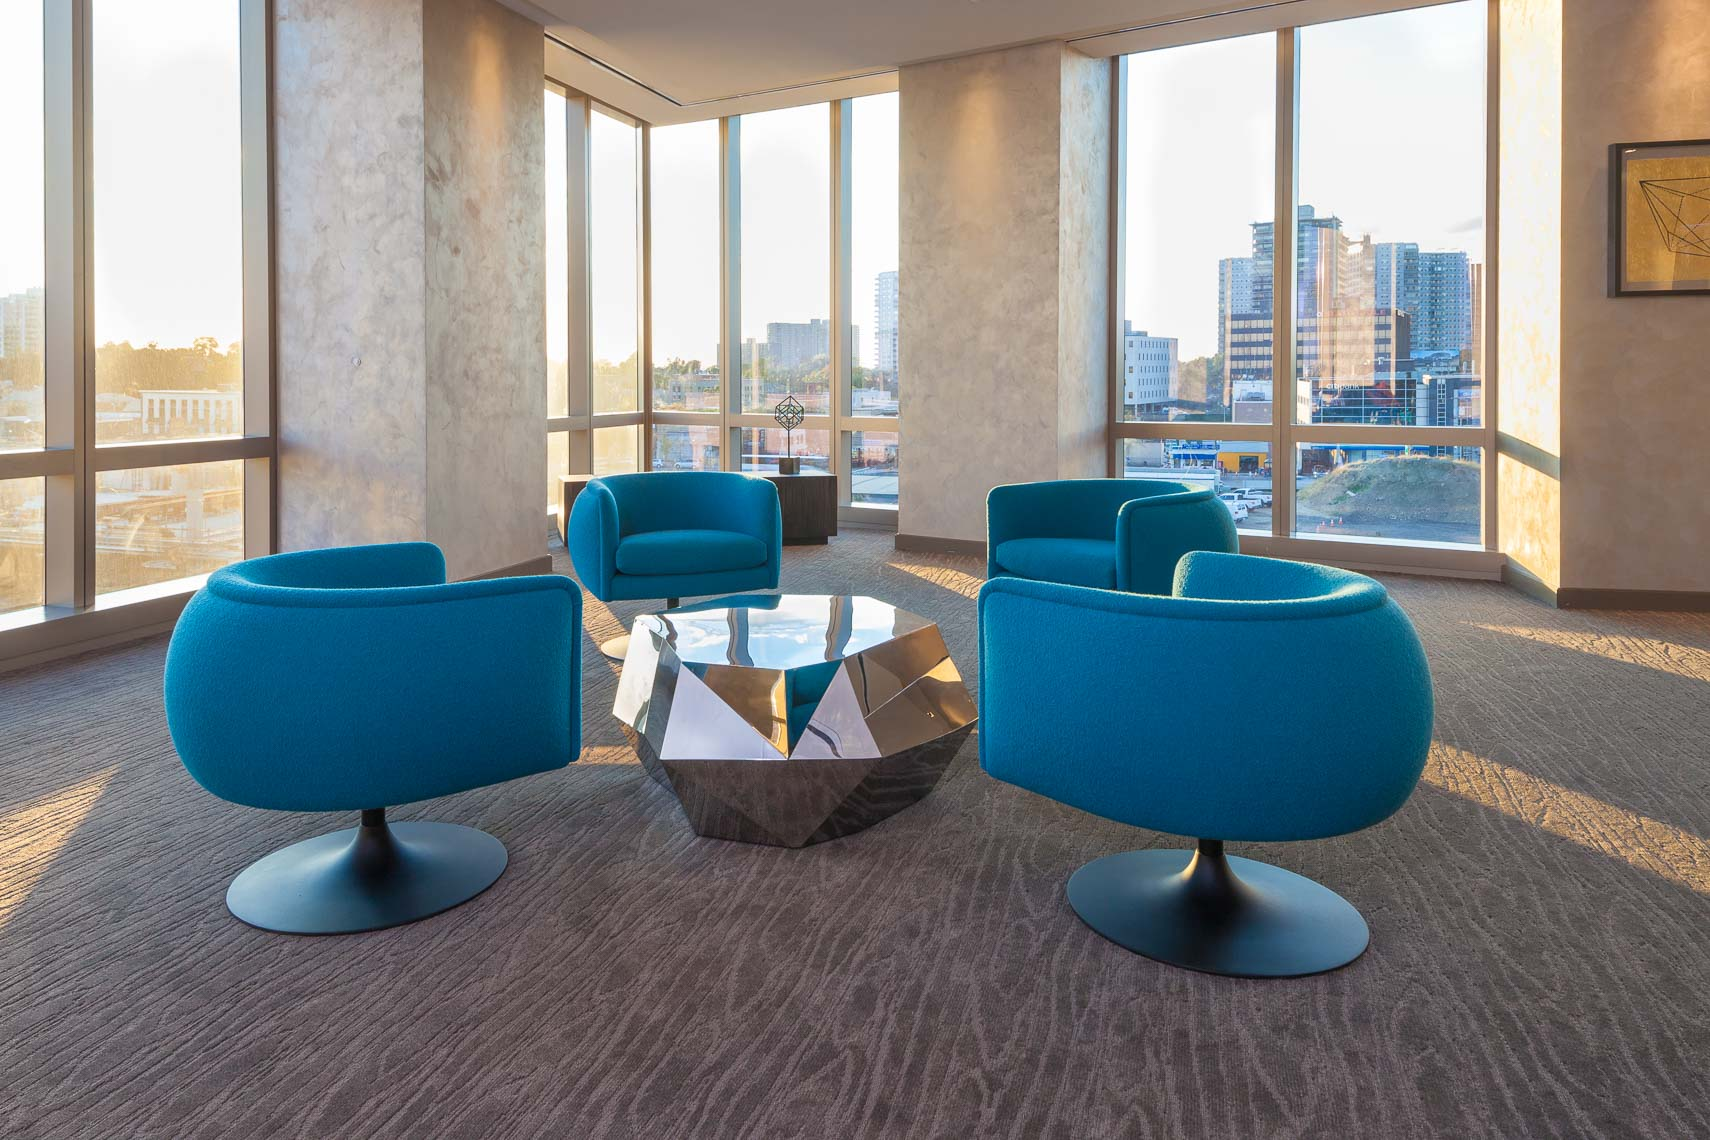 Round blue lounge chairs